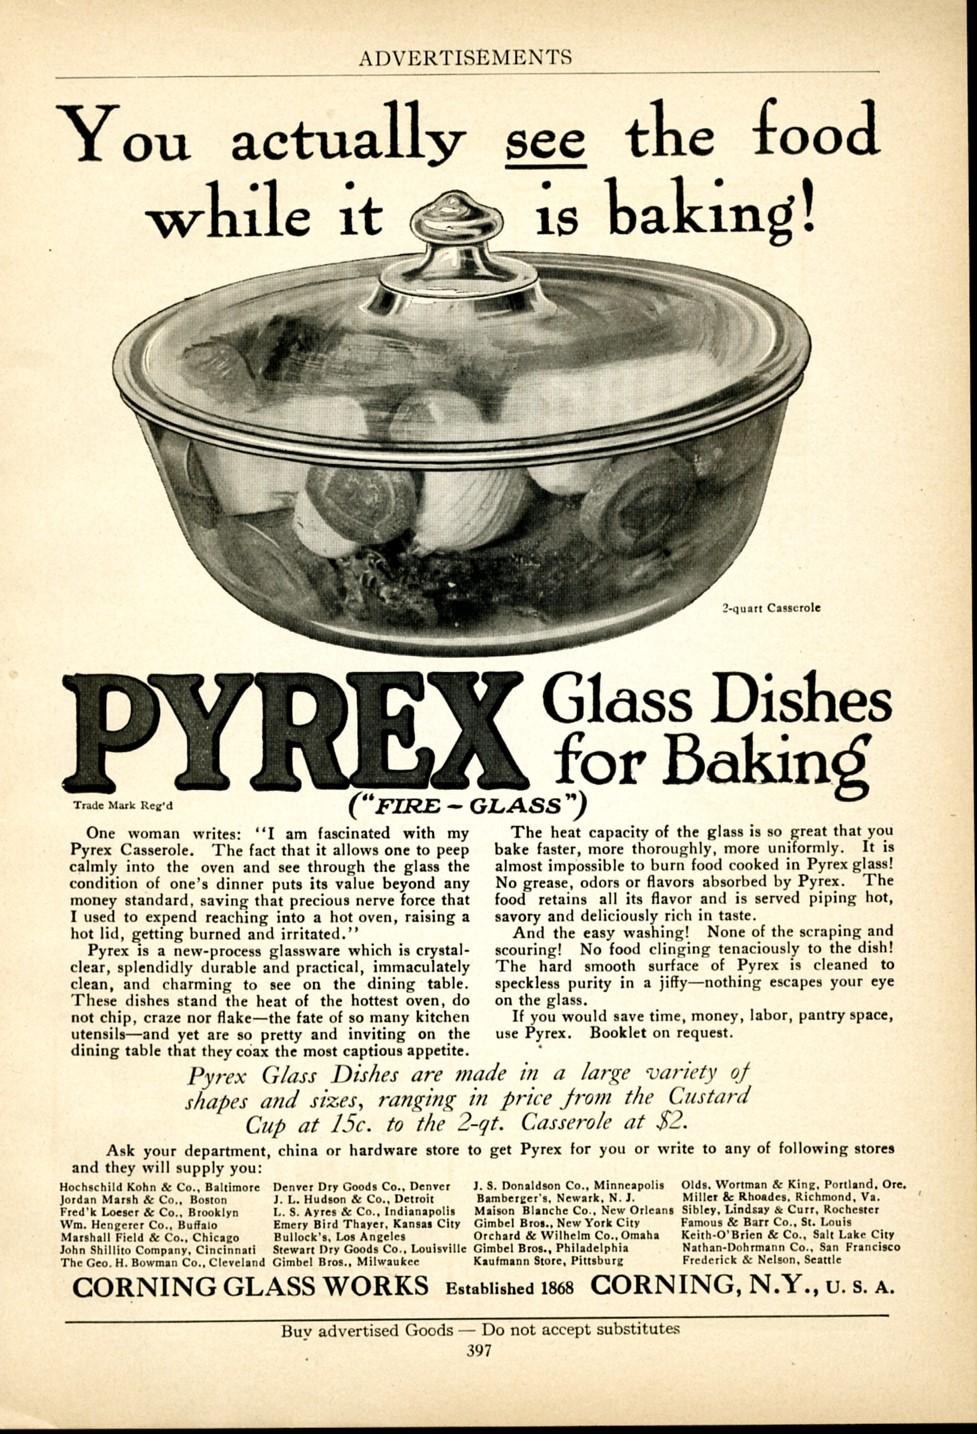 American Cookery, 1915. Corning Glass Works. CMGL 140296.